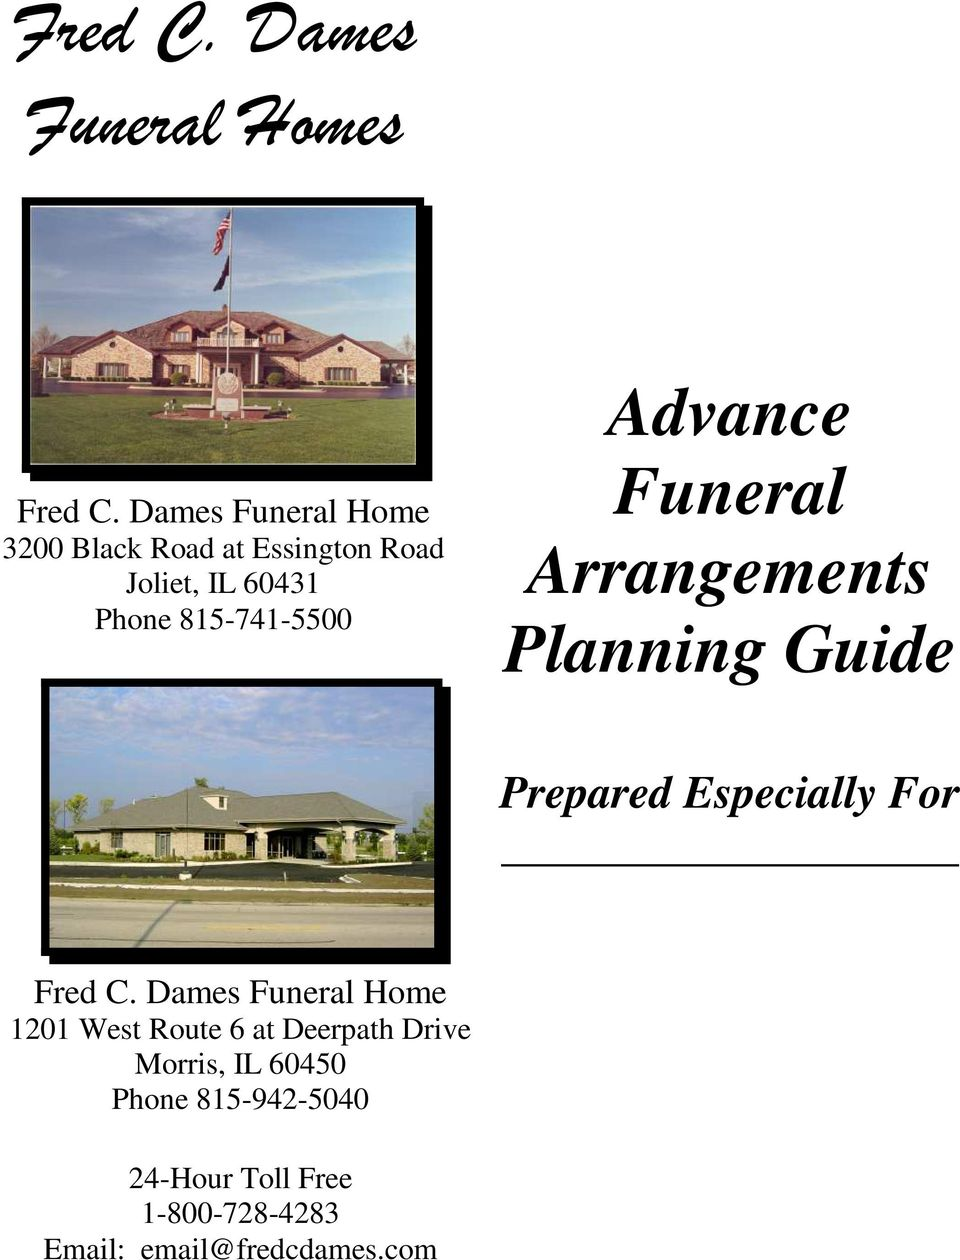 815-741-5500 Advance Funeral Arrangements Planning Guide Prepared Especially For Fred C.